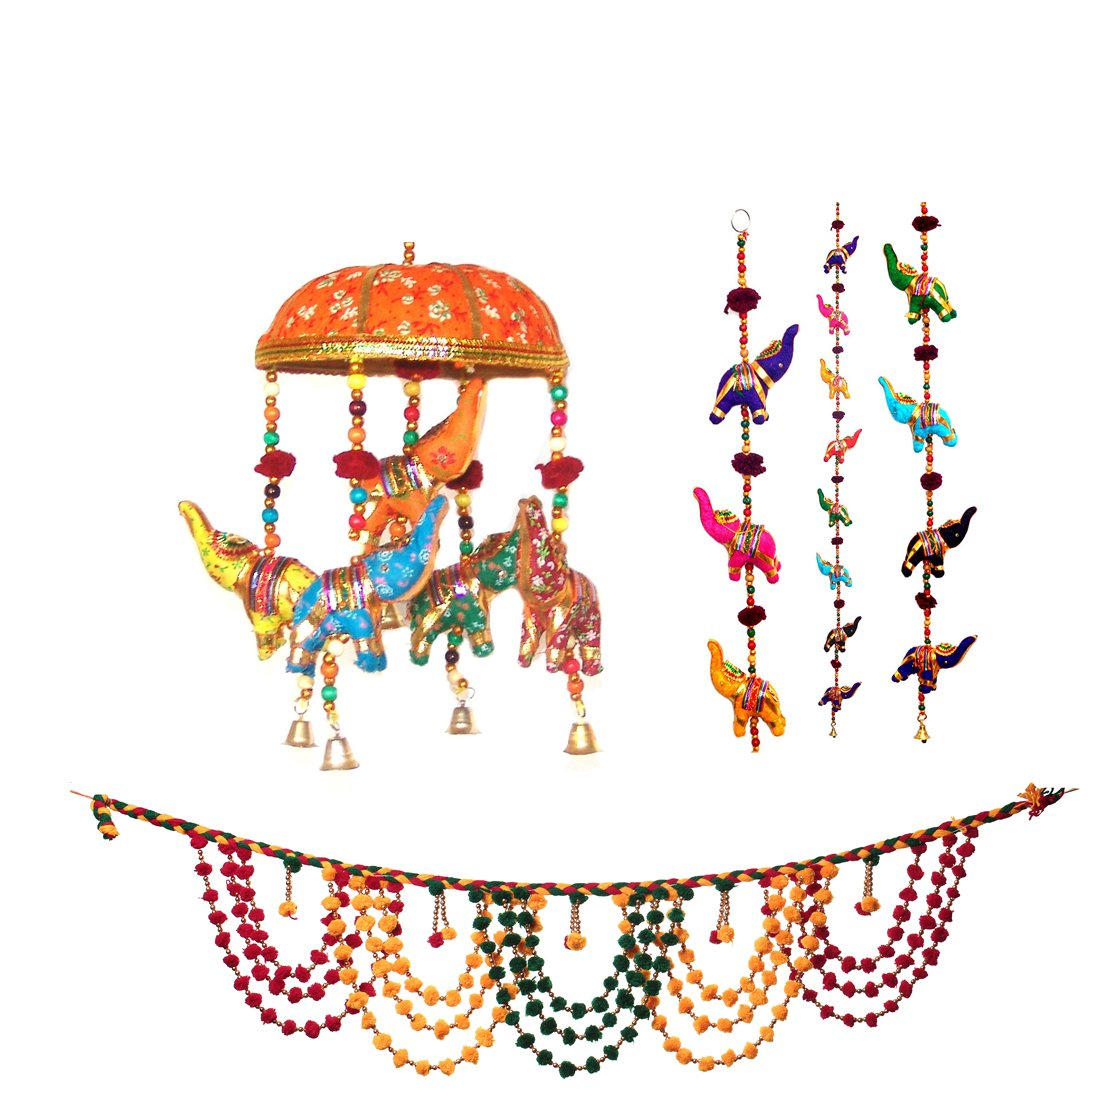 Combo of Handcrafted Elephant Door Hanging Home /Wall Décor- 1 Pair With Indian Diwali Door Valance Wall Decor Hanging Festive Decoration Gift and Elephant wall Hanging